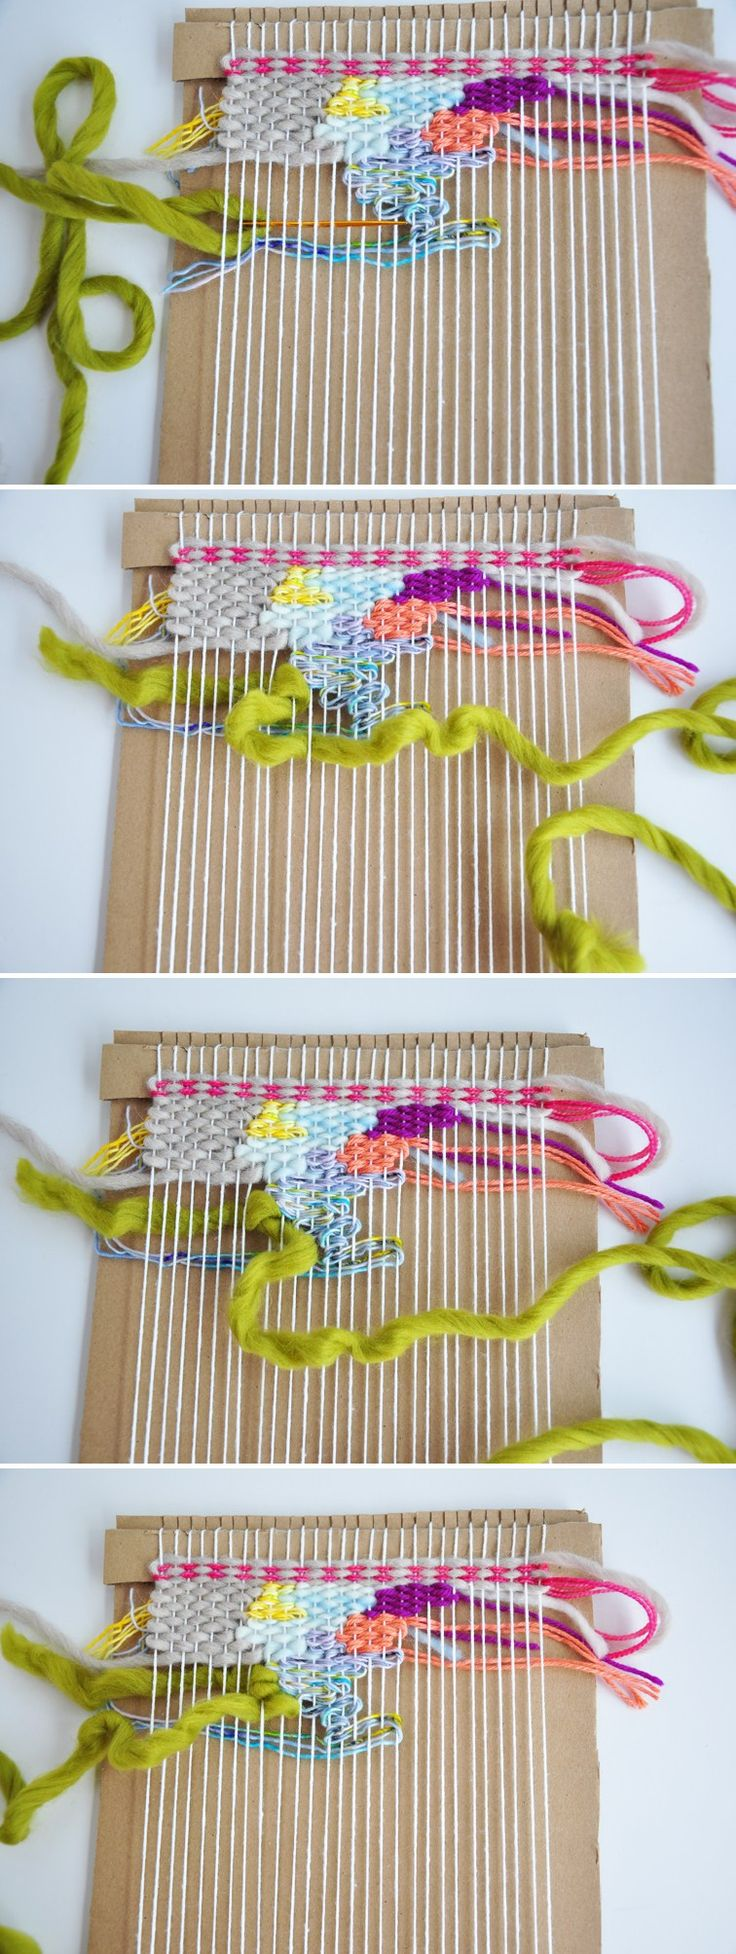 Easy spring crafts for seniors - How To Doodle Weave Mais